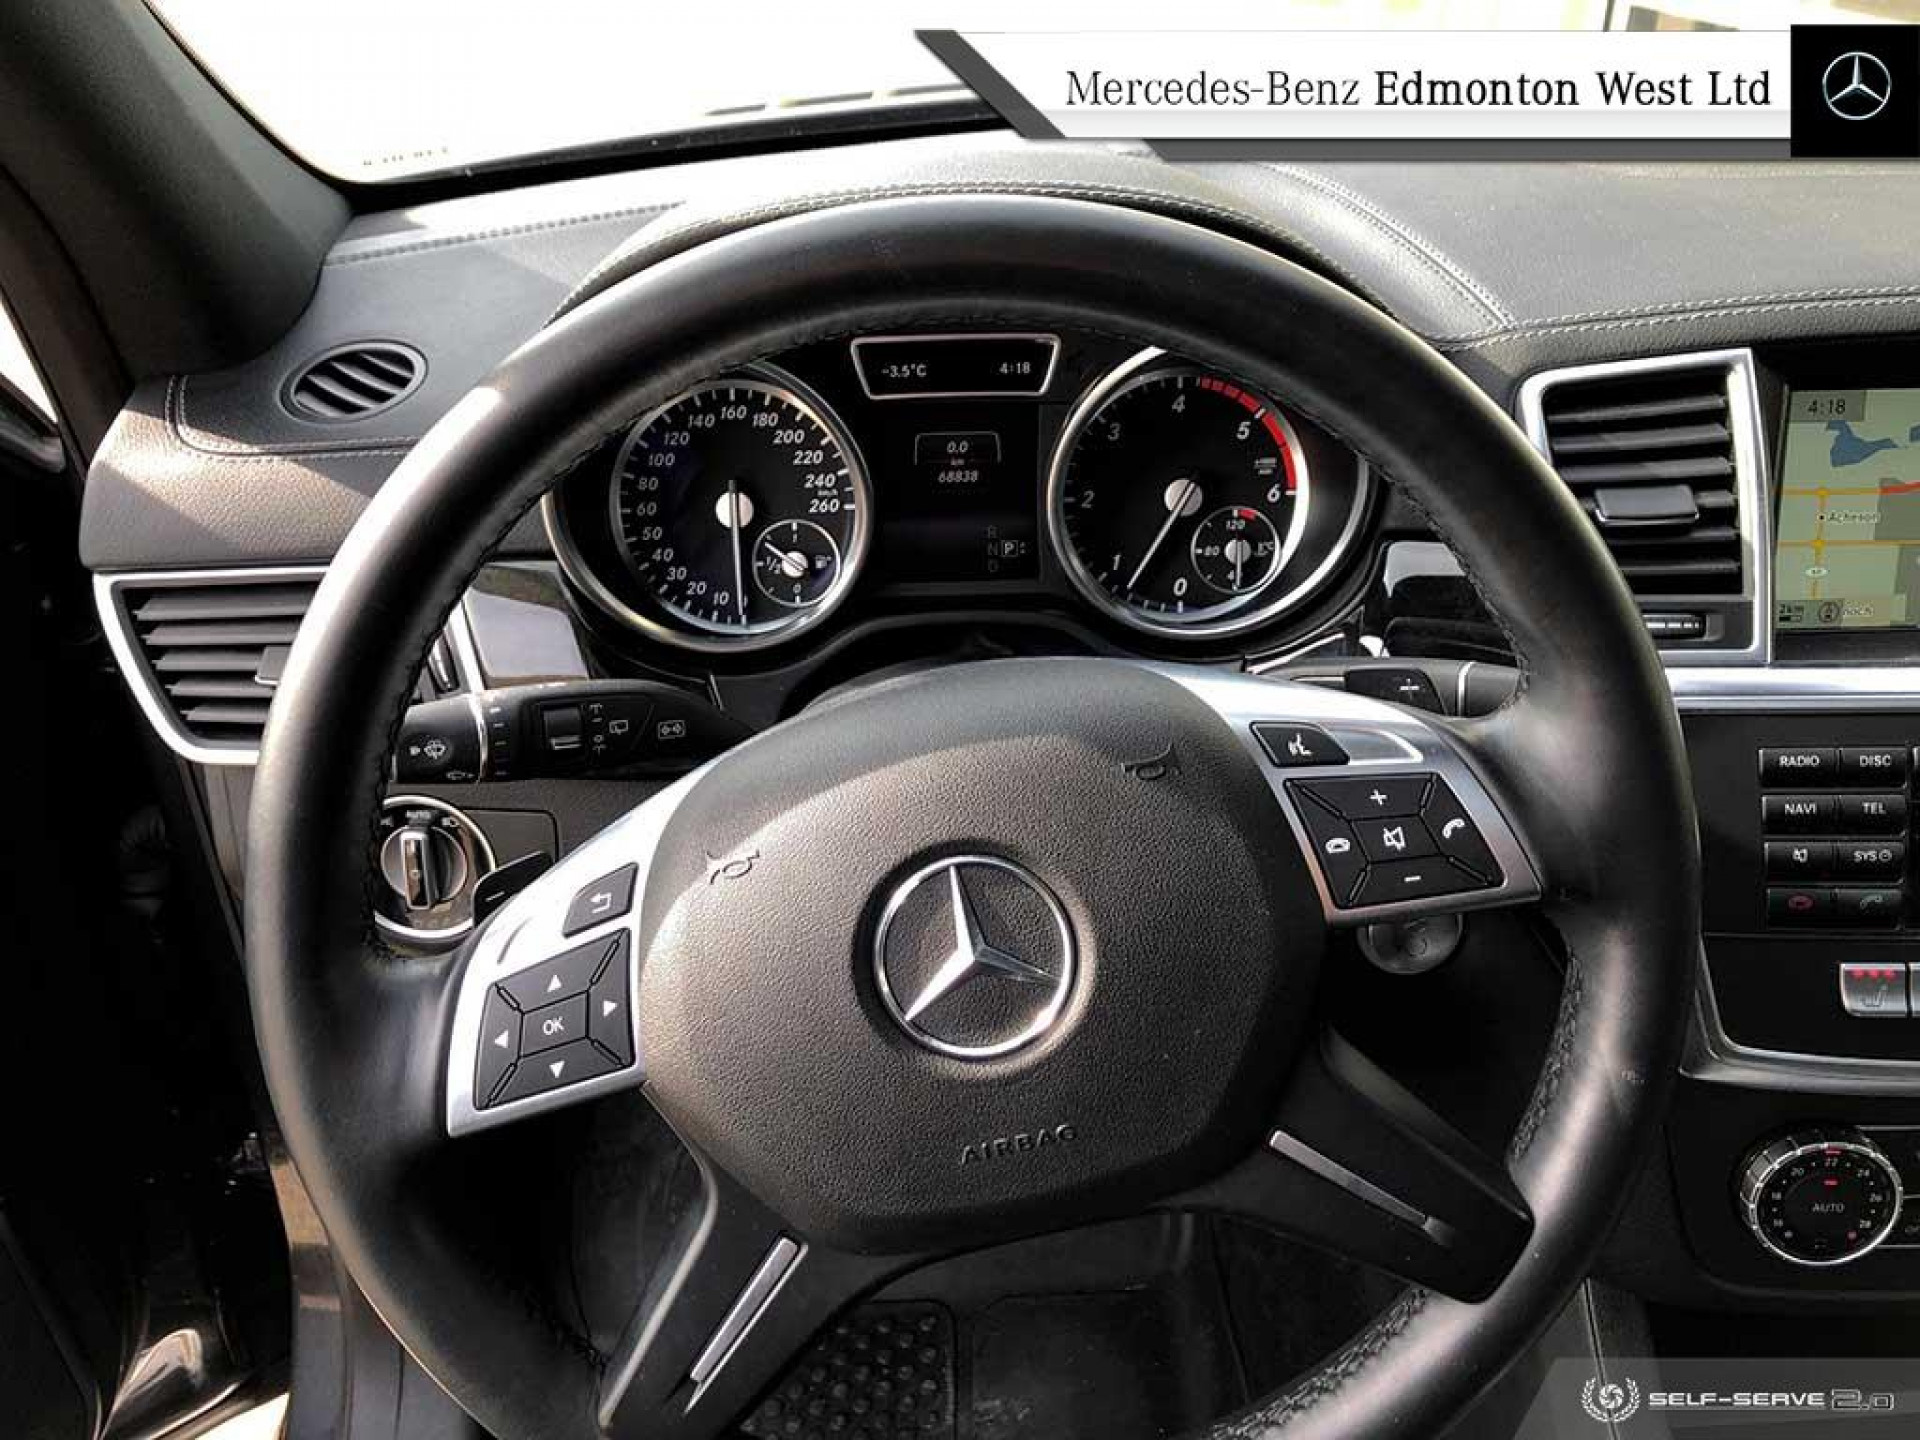 Pre-Owned 2015 Mercedes Benz GL-Class 350 BlueTEC 4MATIC Bluetec Diesel, Low Kilometers, Power 3rd Row Seating